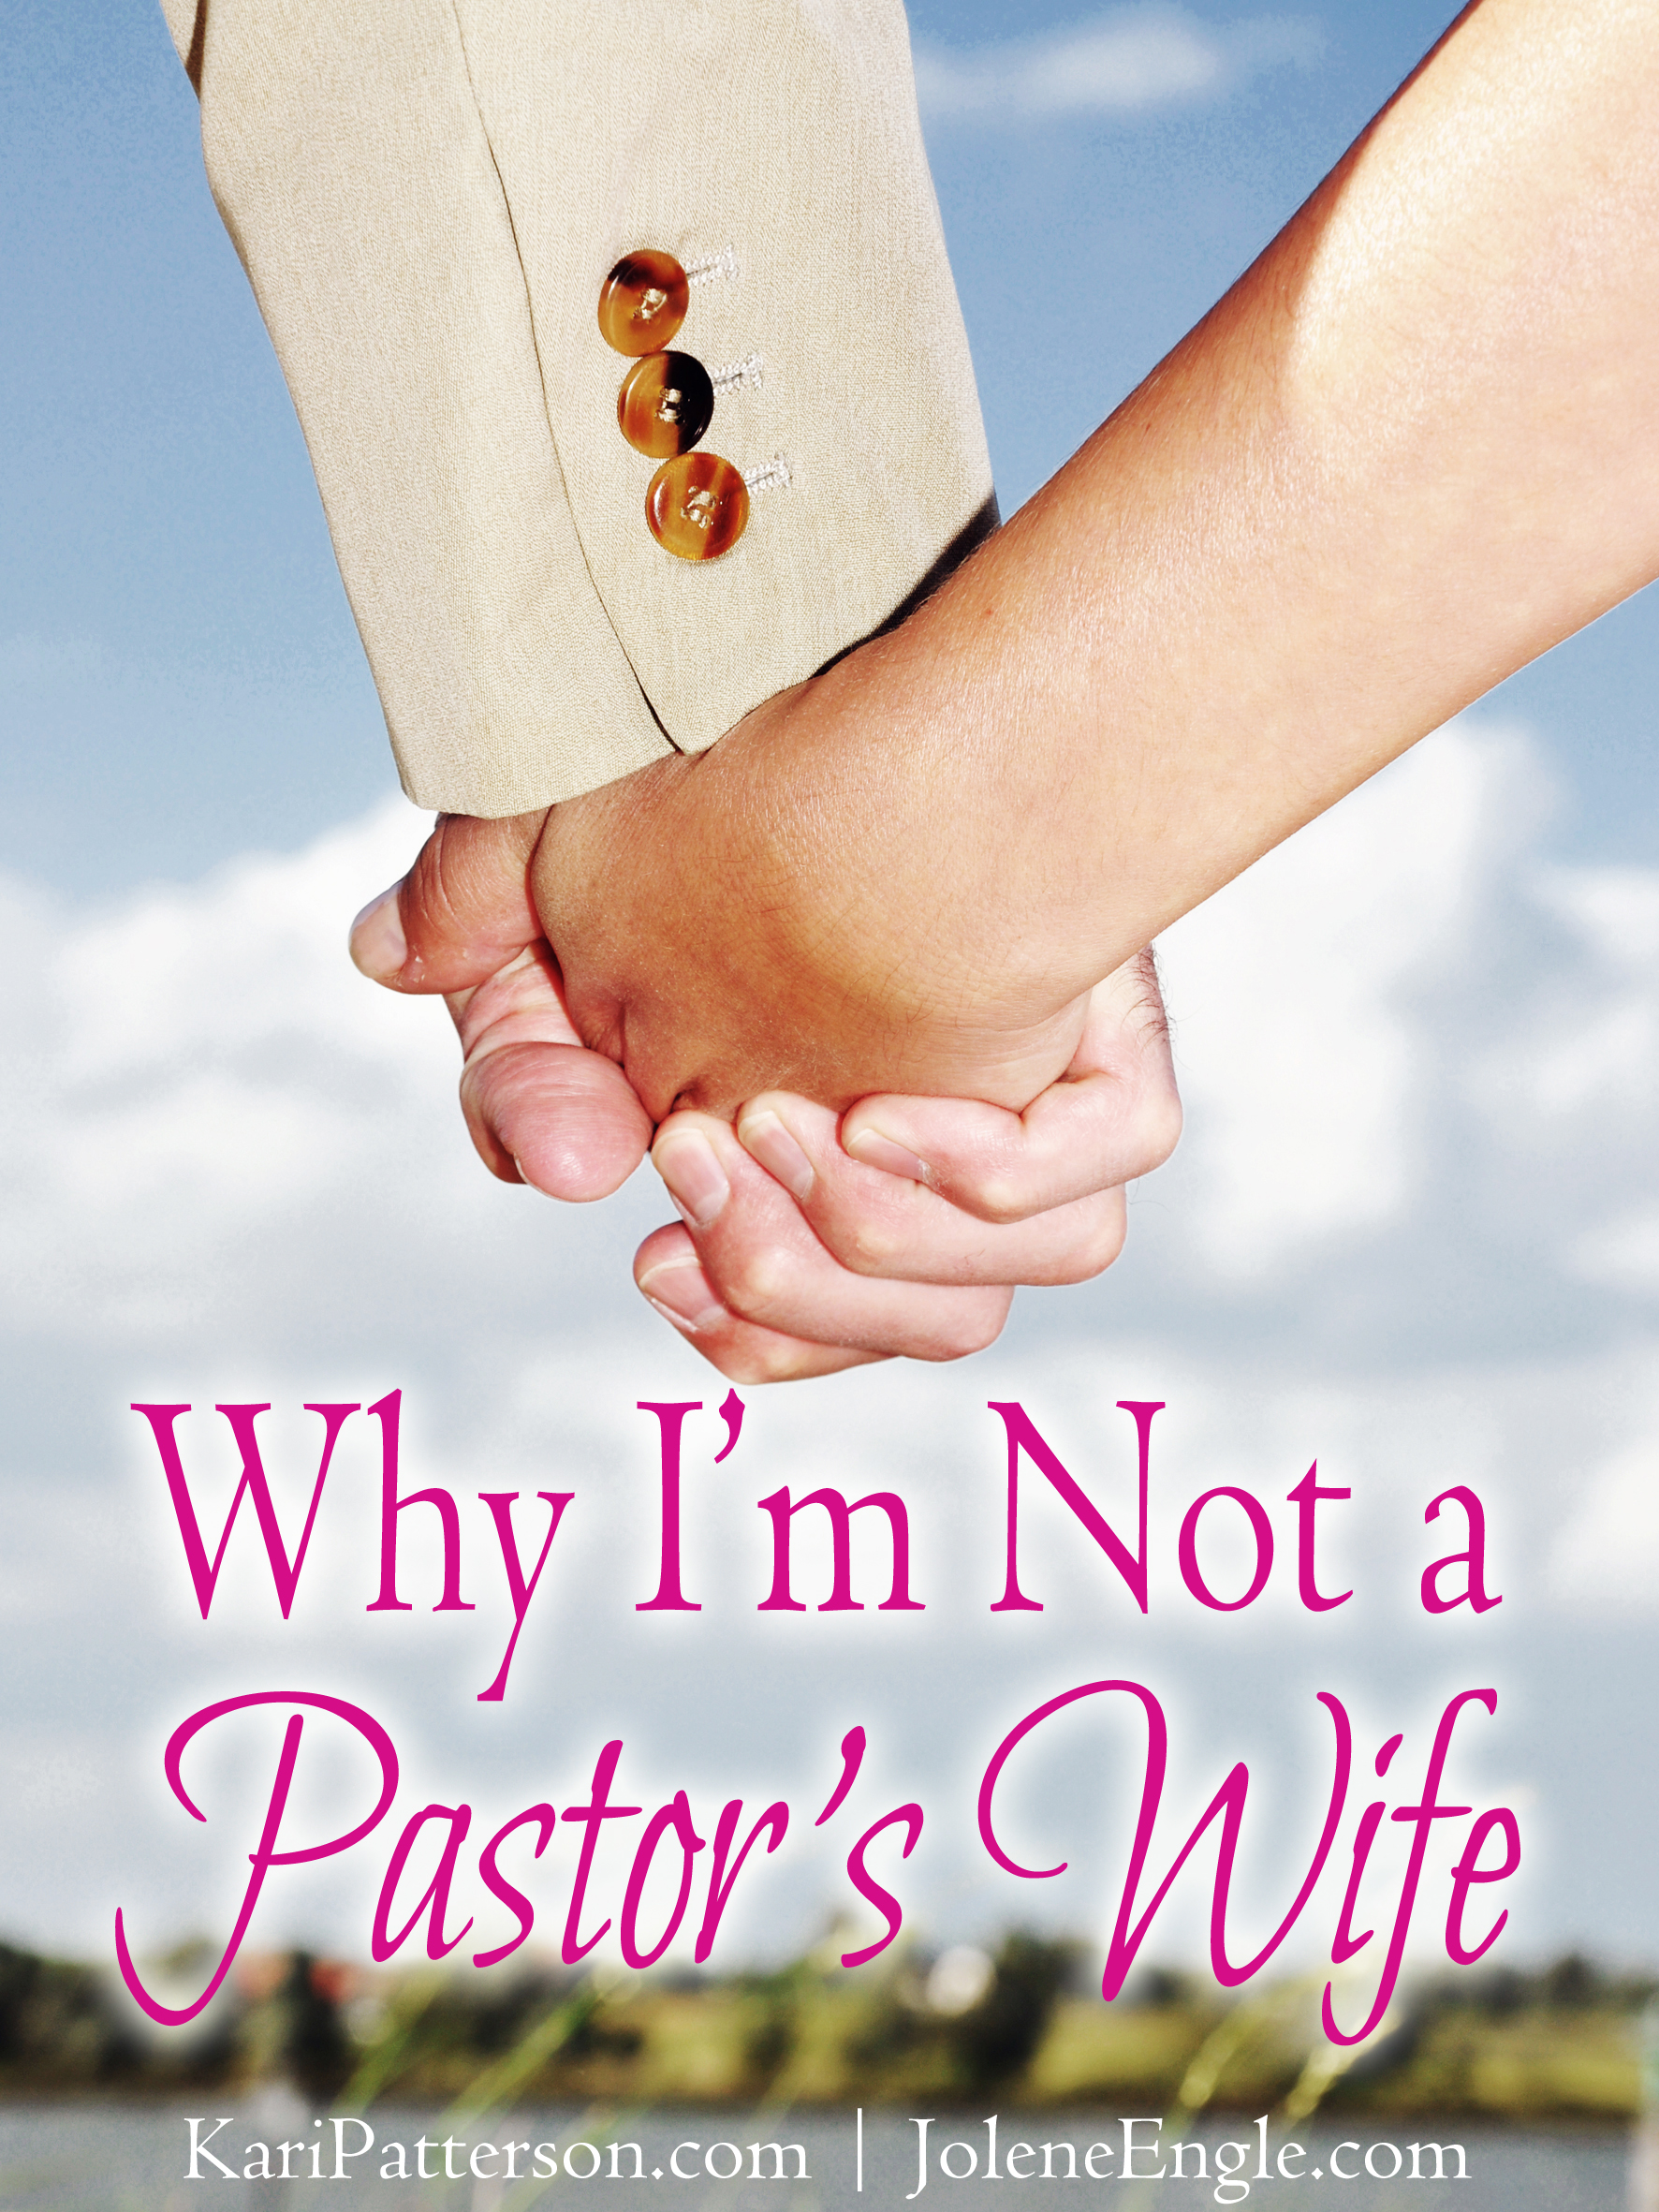 Why I'm Not a Pastor's Wife